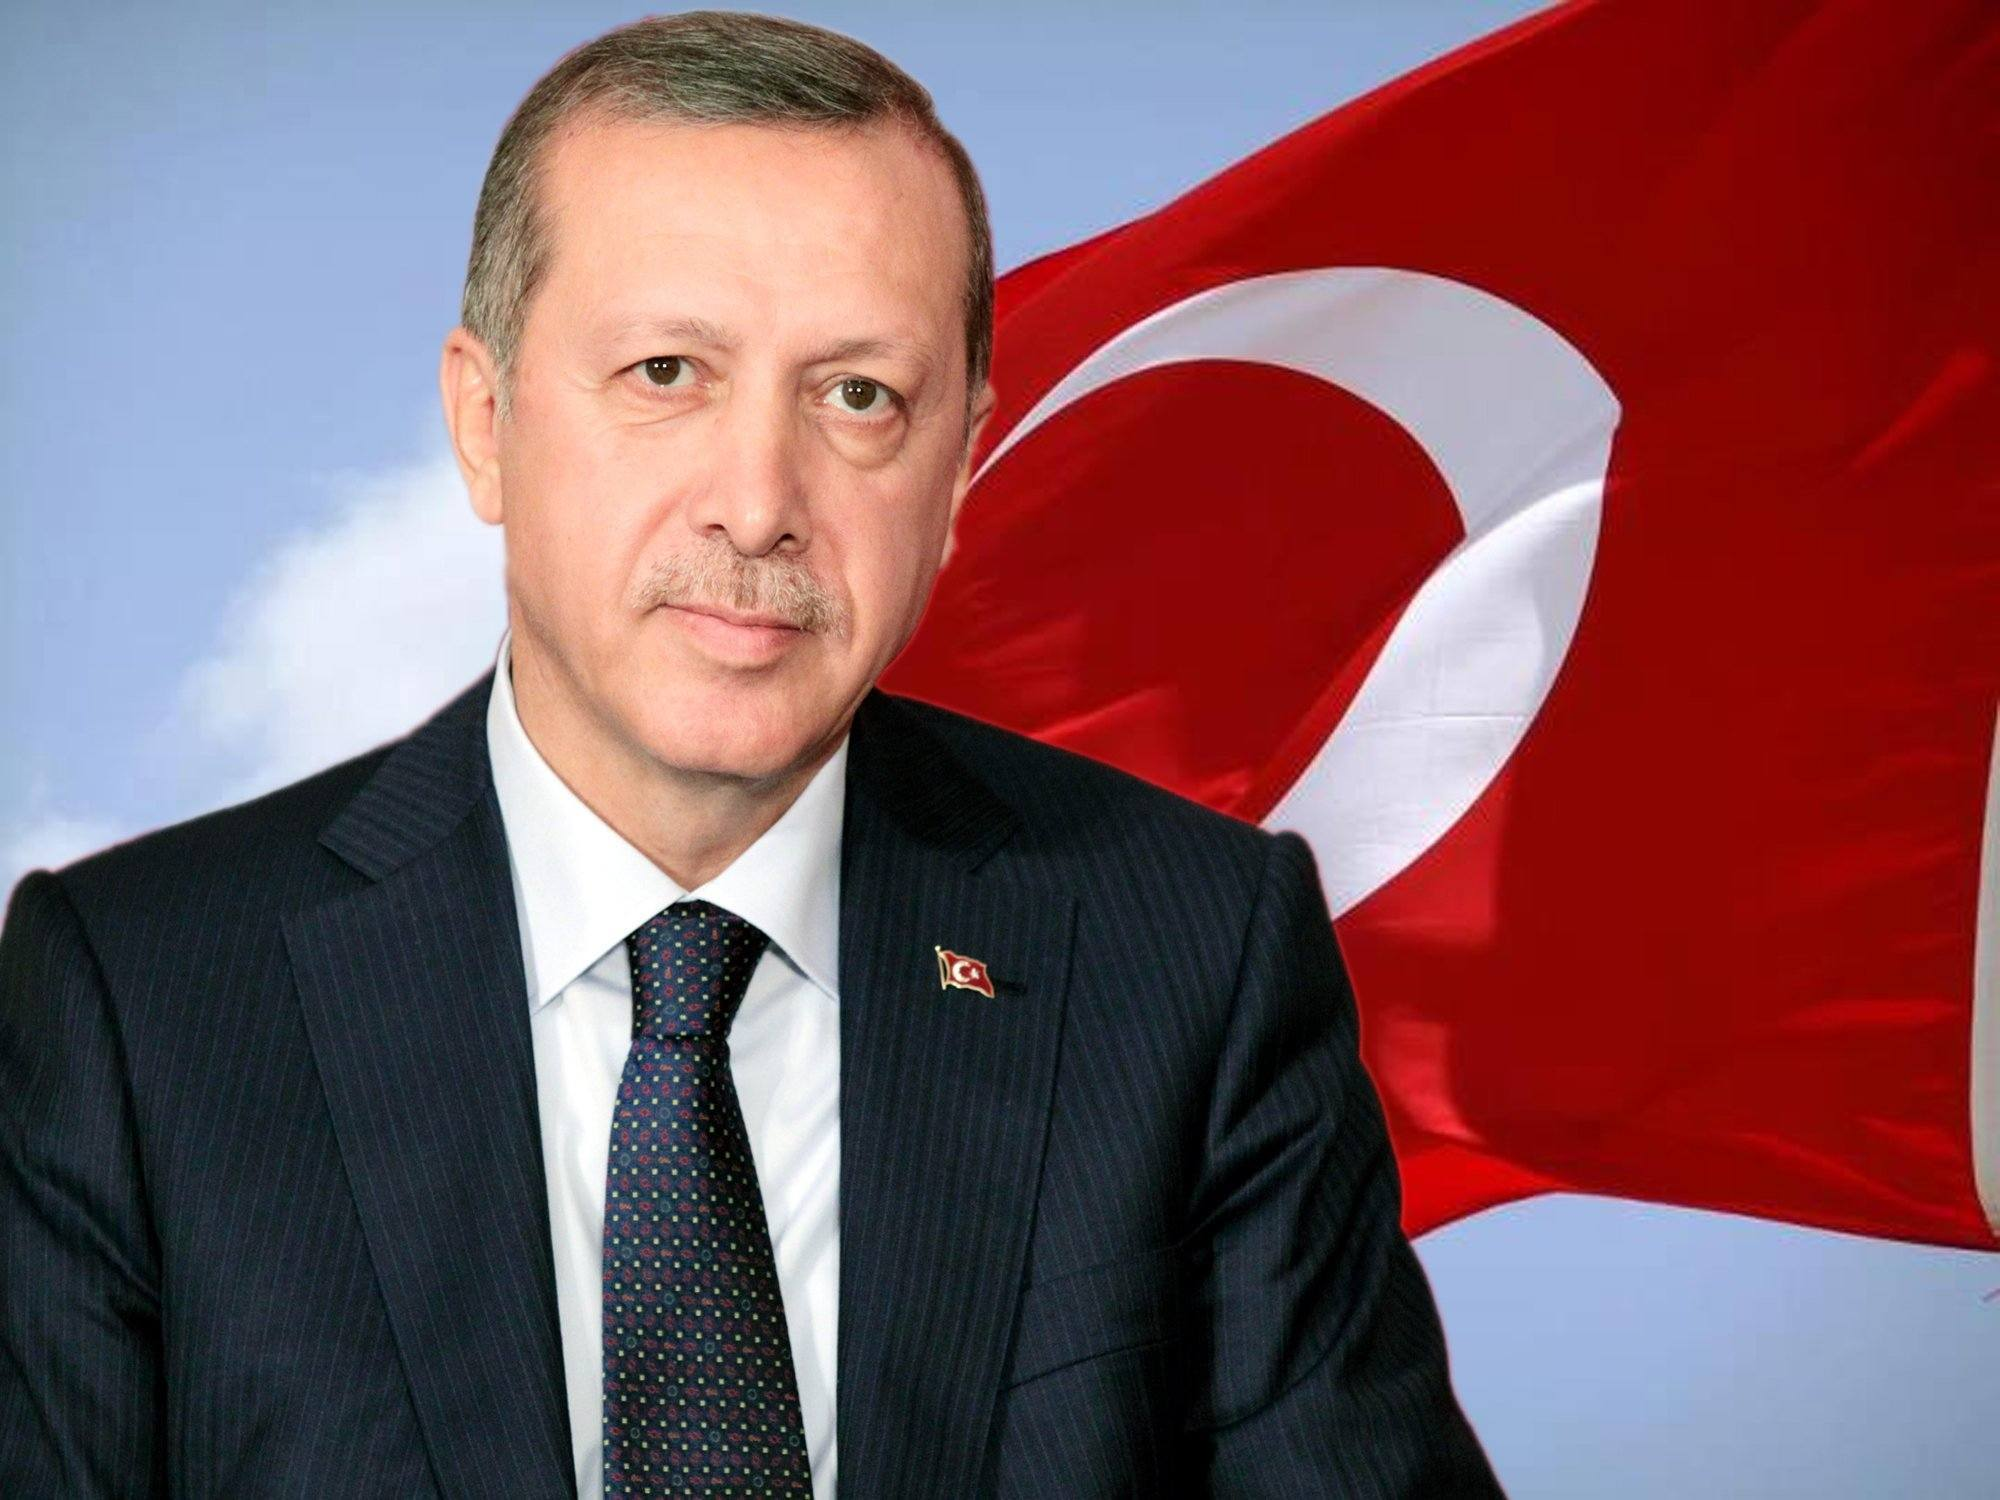 recep-tayyip-erdoan-3 Famous Muslims-20 Most Influential Muslims in The World